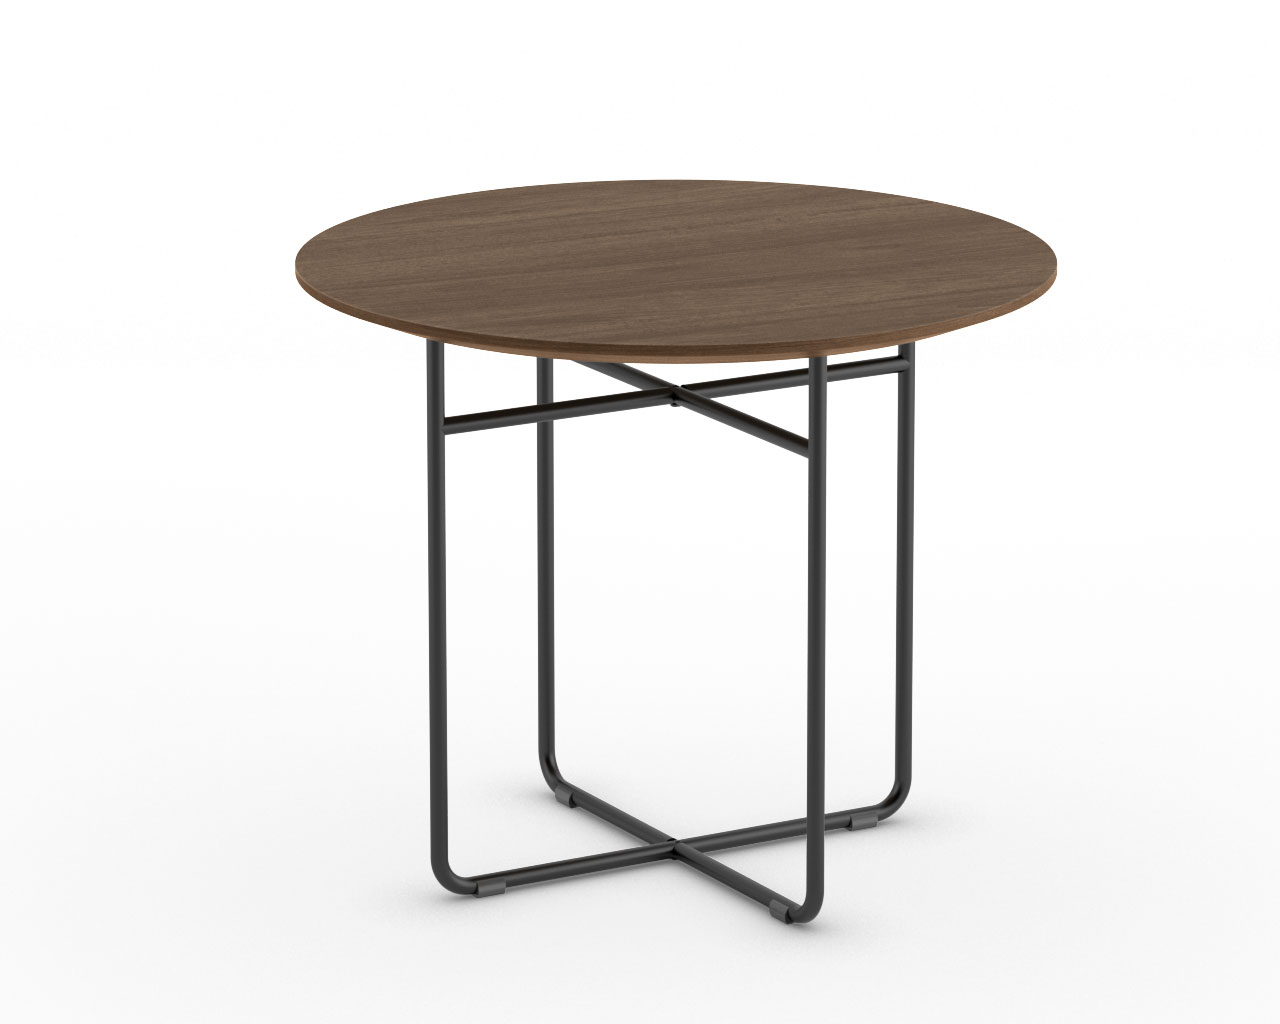 Coopertown Tables Source Office Furniture